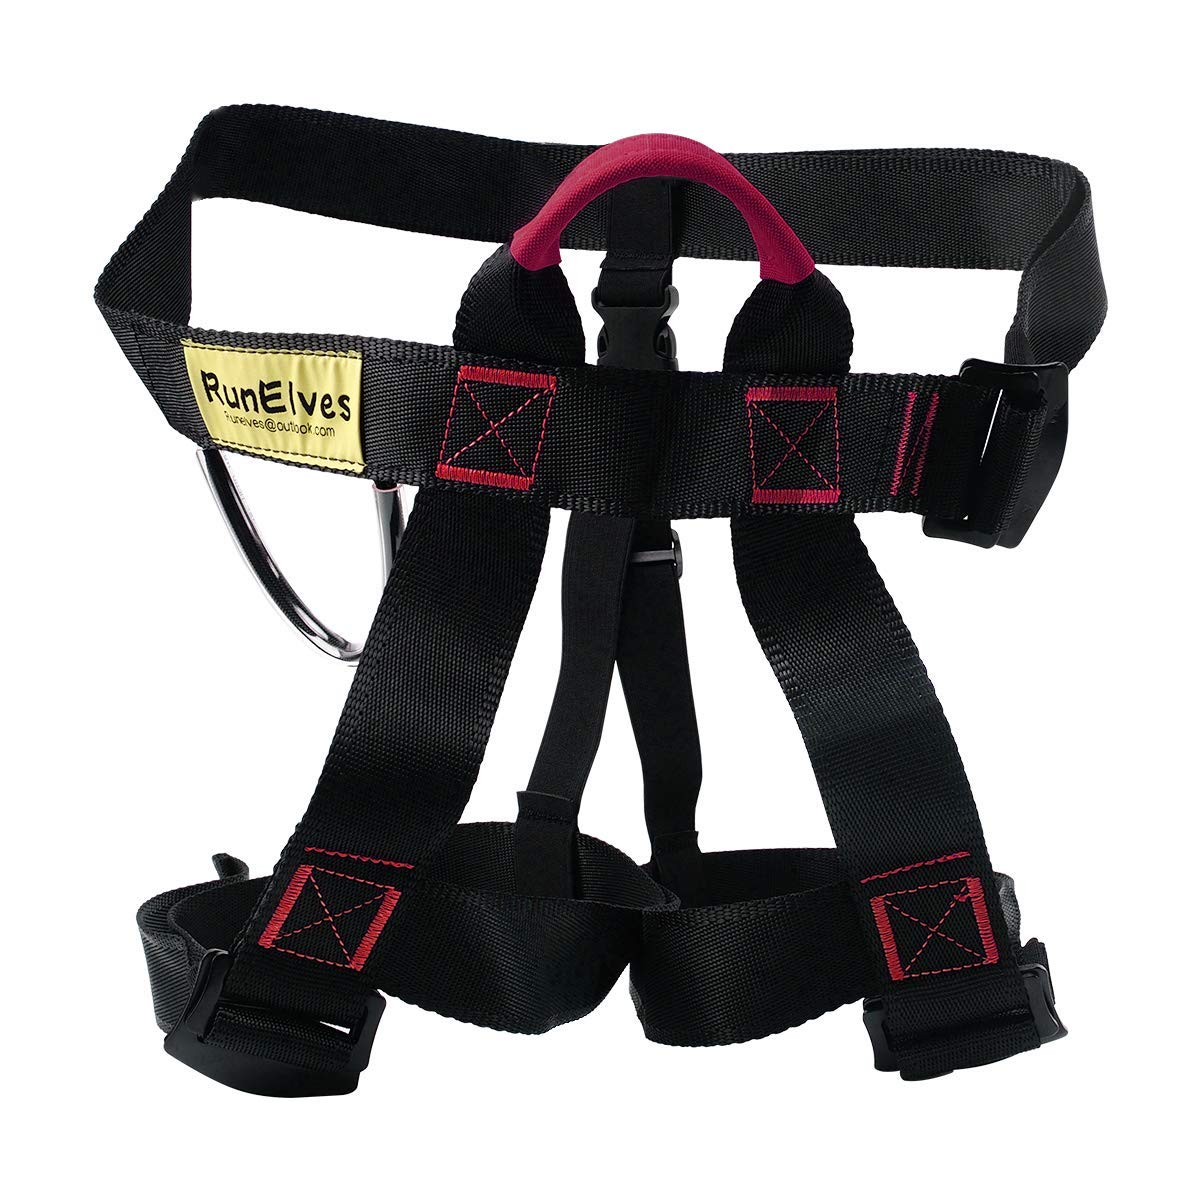 Climbing Harness,Thicken Protect Waist Leg,Tree Arborist Climbing Safety Harness, Wider Seat Belts for Professional Mountain Fire Rescue,Rock Climbing Rappelling,Half Body Harness for Women Man Kids